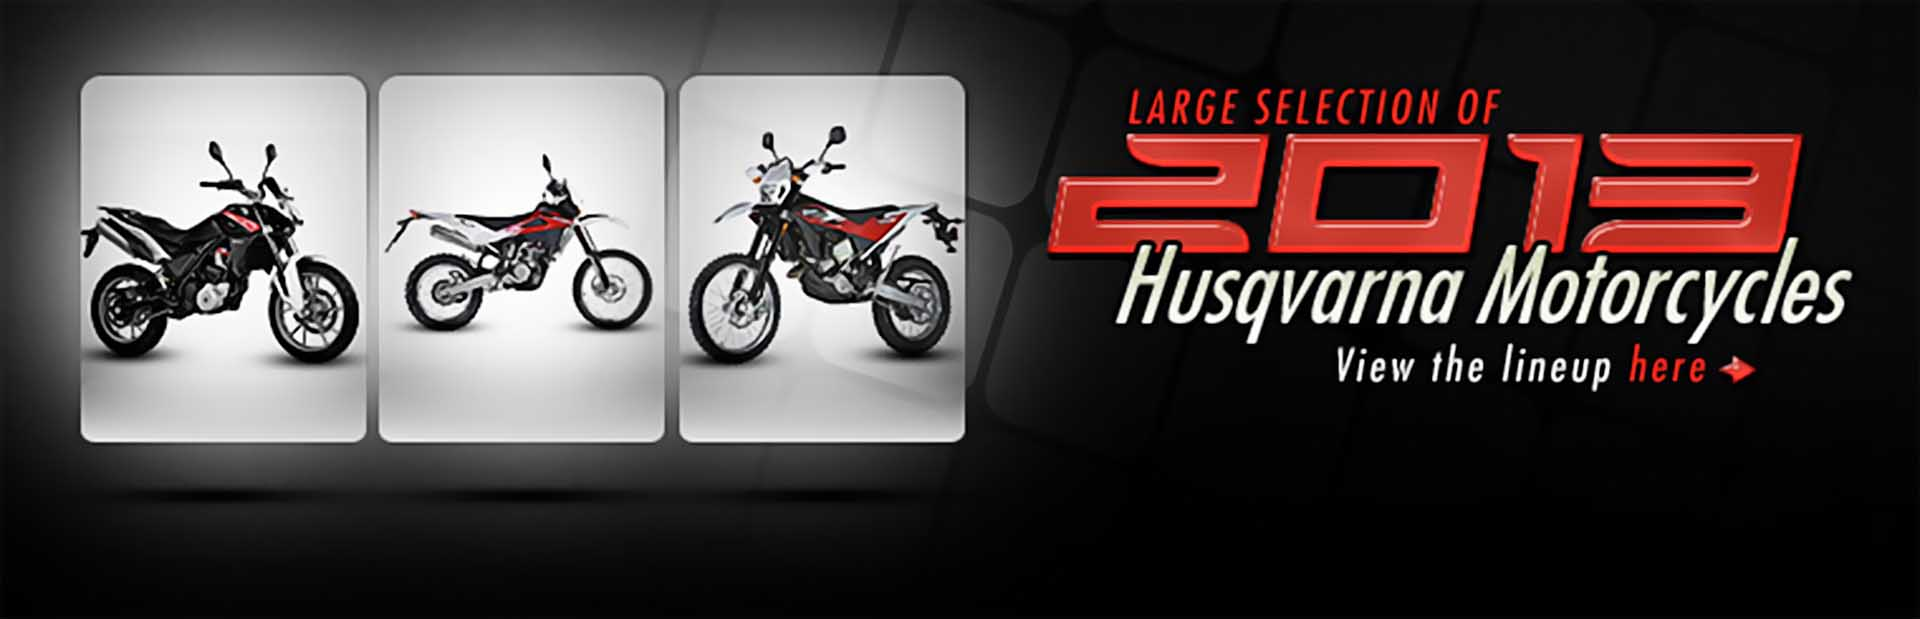 Click here to view the 2013 Husqvarna motorcycles.